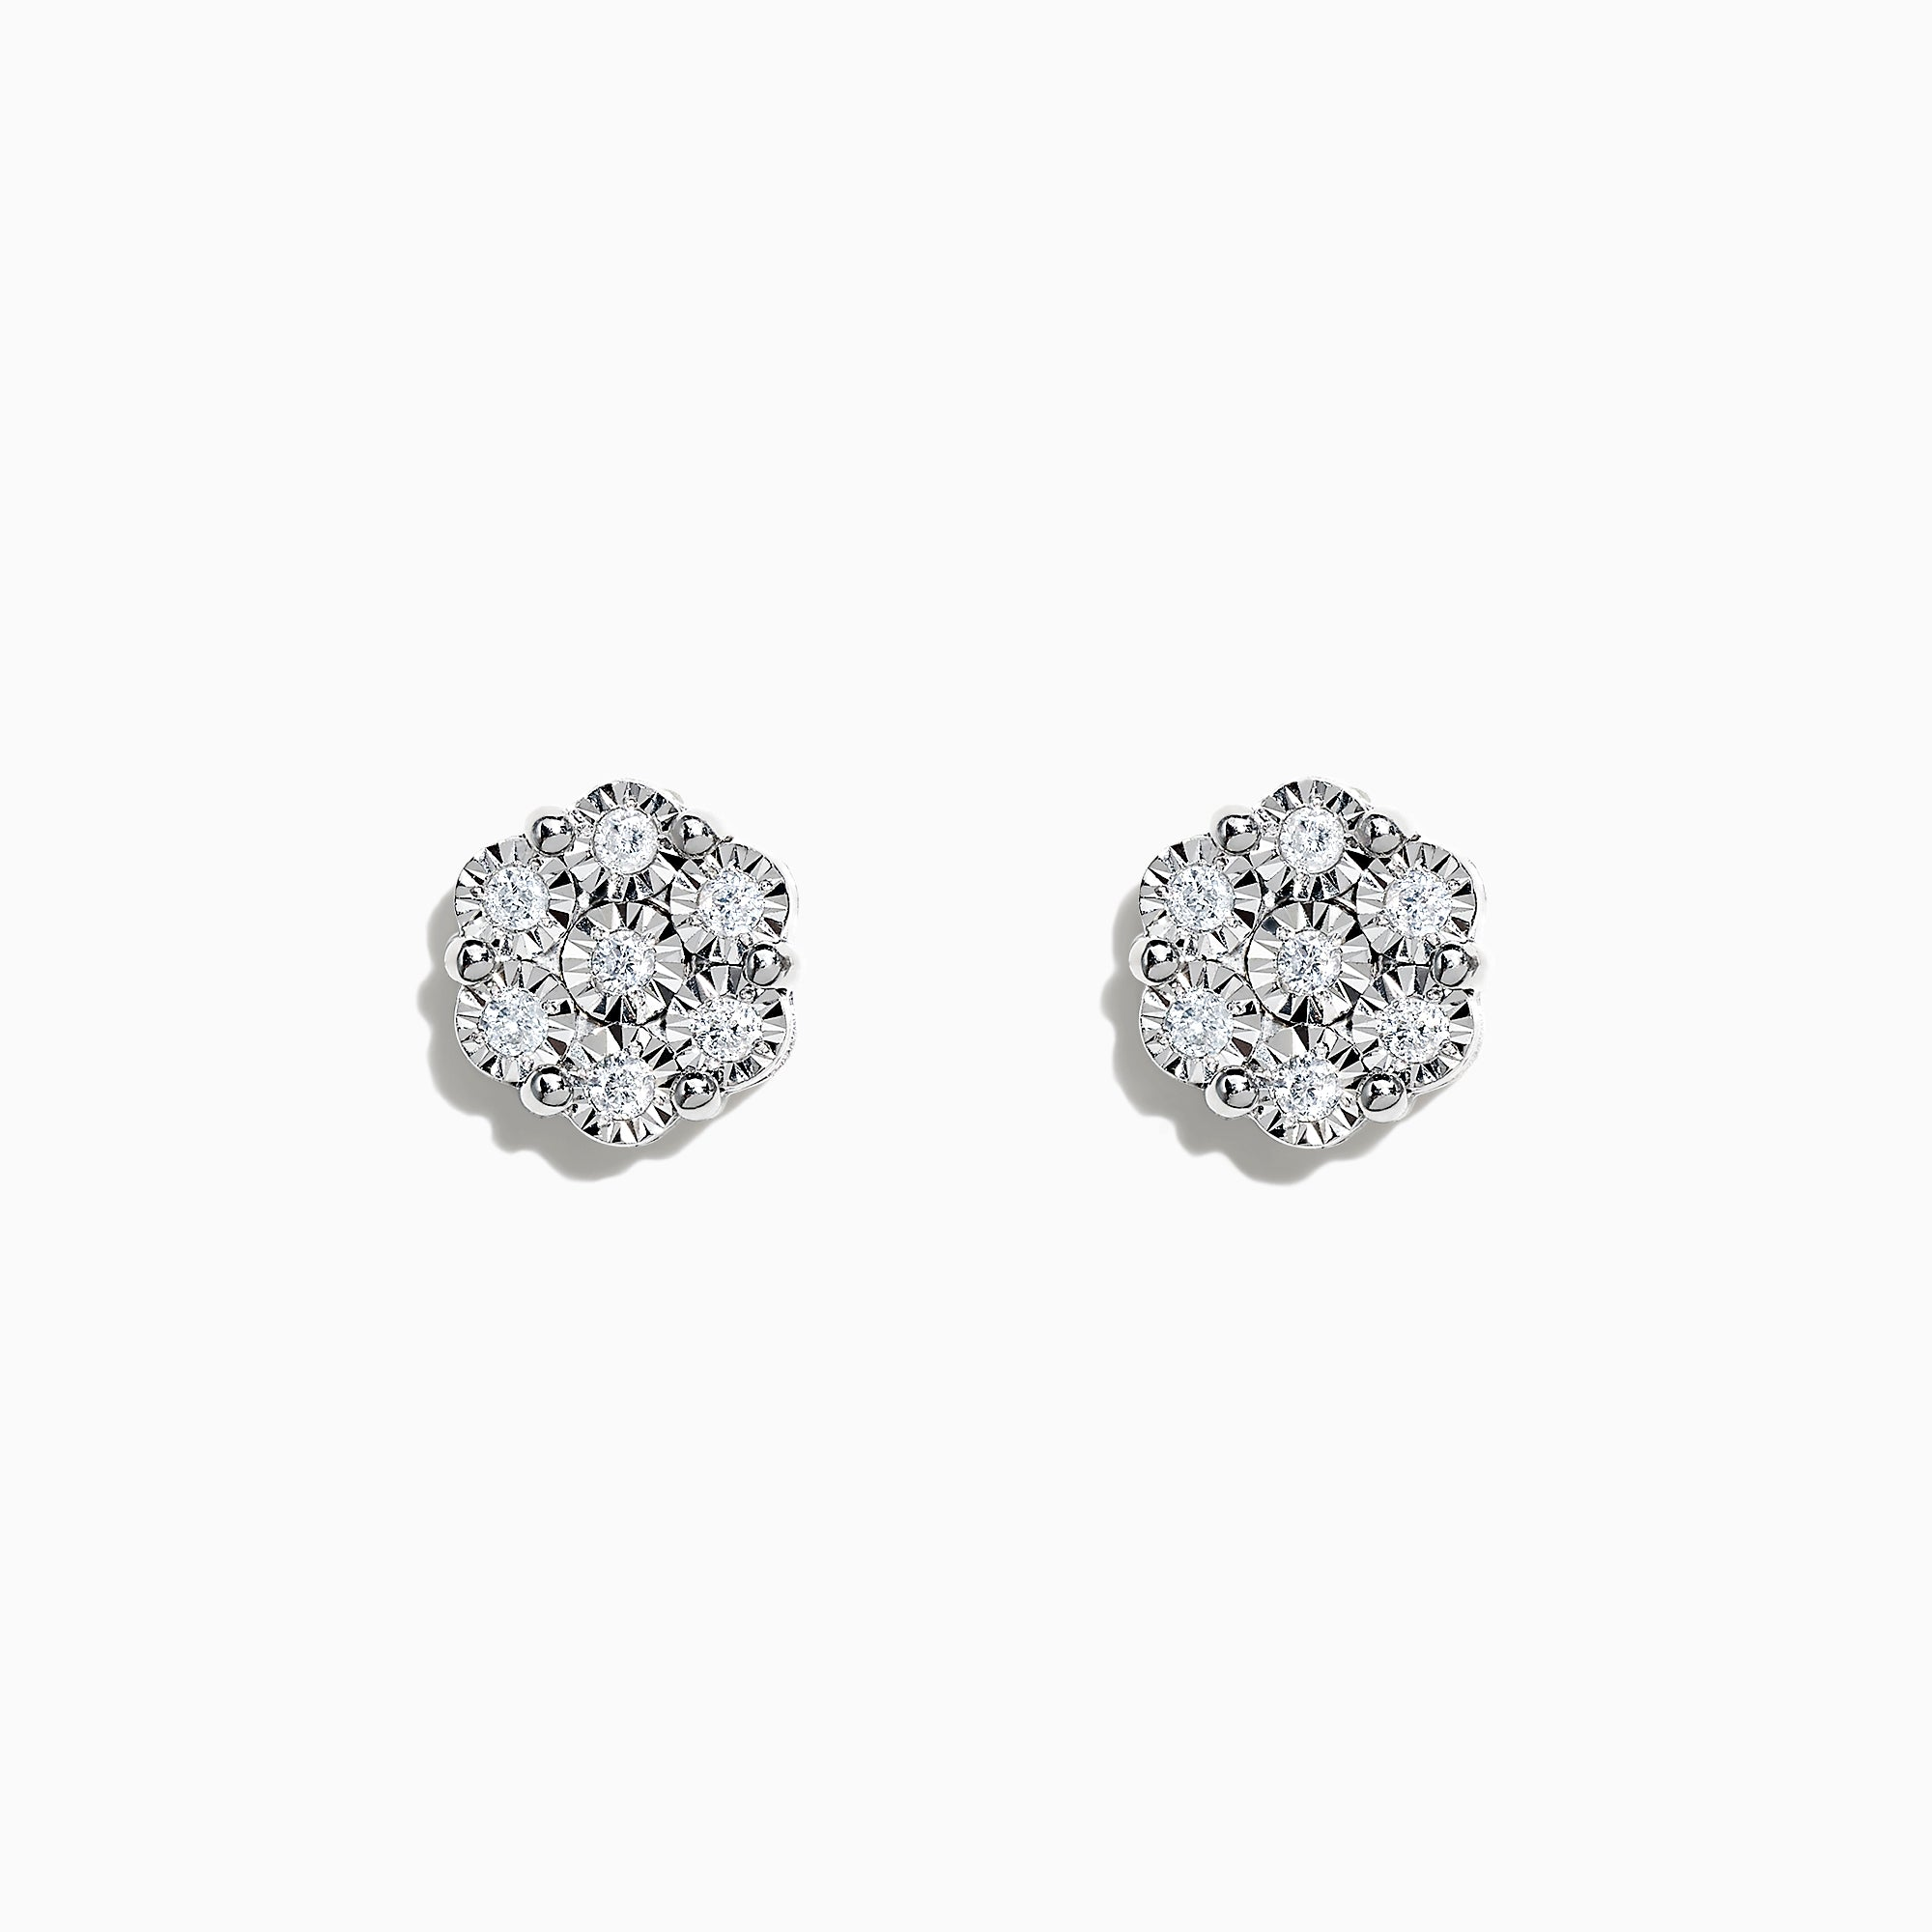 Effy 925 Sterling Silver Diamond Bouquet Stud Earrings, 0.14 TCW